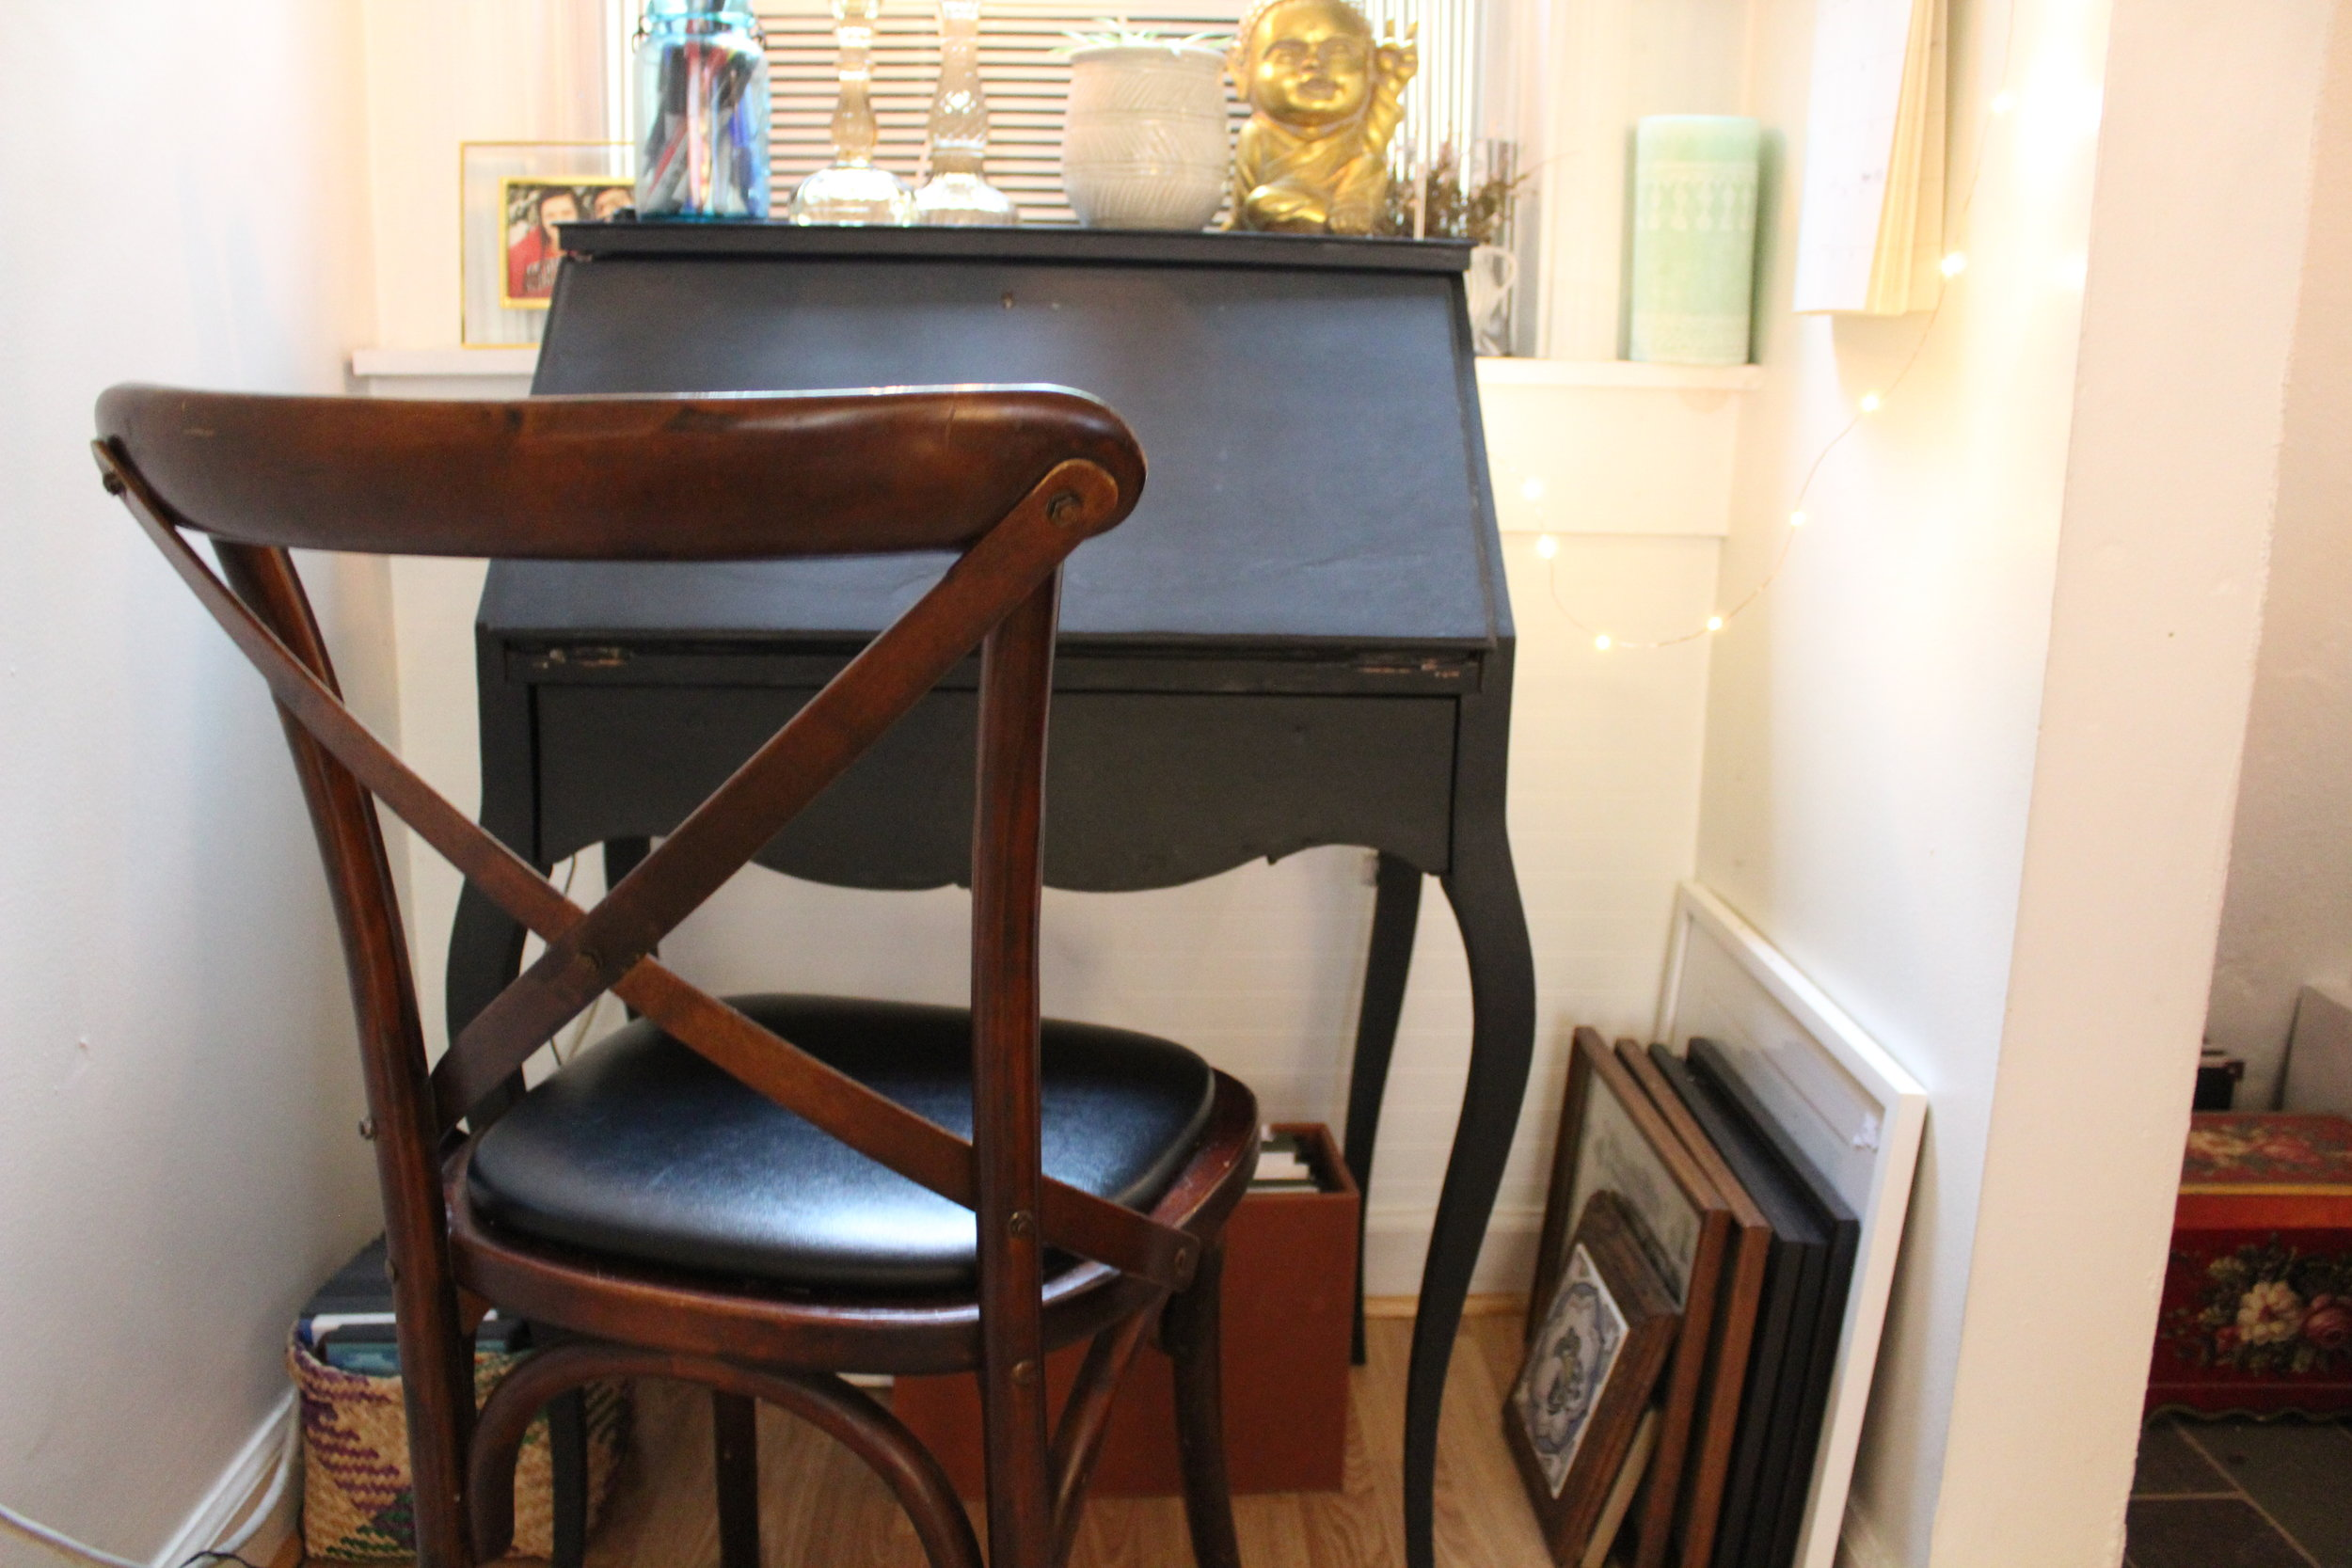 - This desk chair is the only recent new item I've picked up... but it was free! A local restaurant was getting new chairs and gave away all the old ones for free. I love the timeless style and its the perfect size for my small desk. Also getting this chair allowed me to move my antique chair forward!